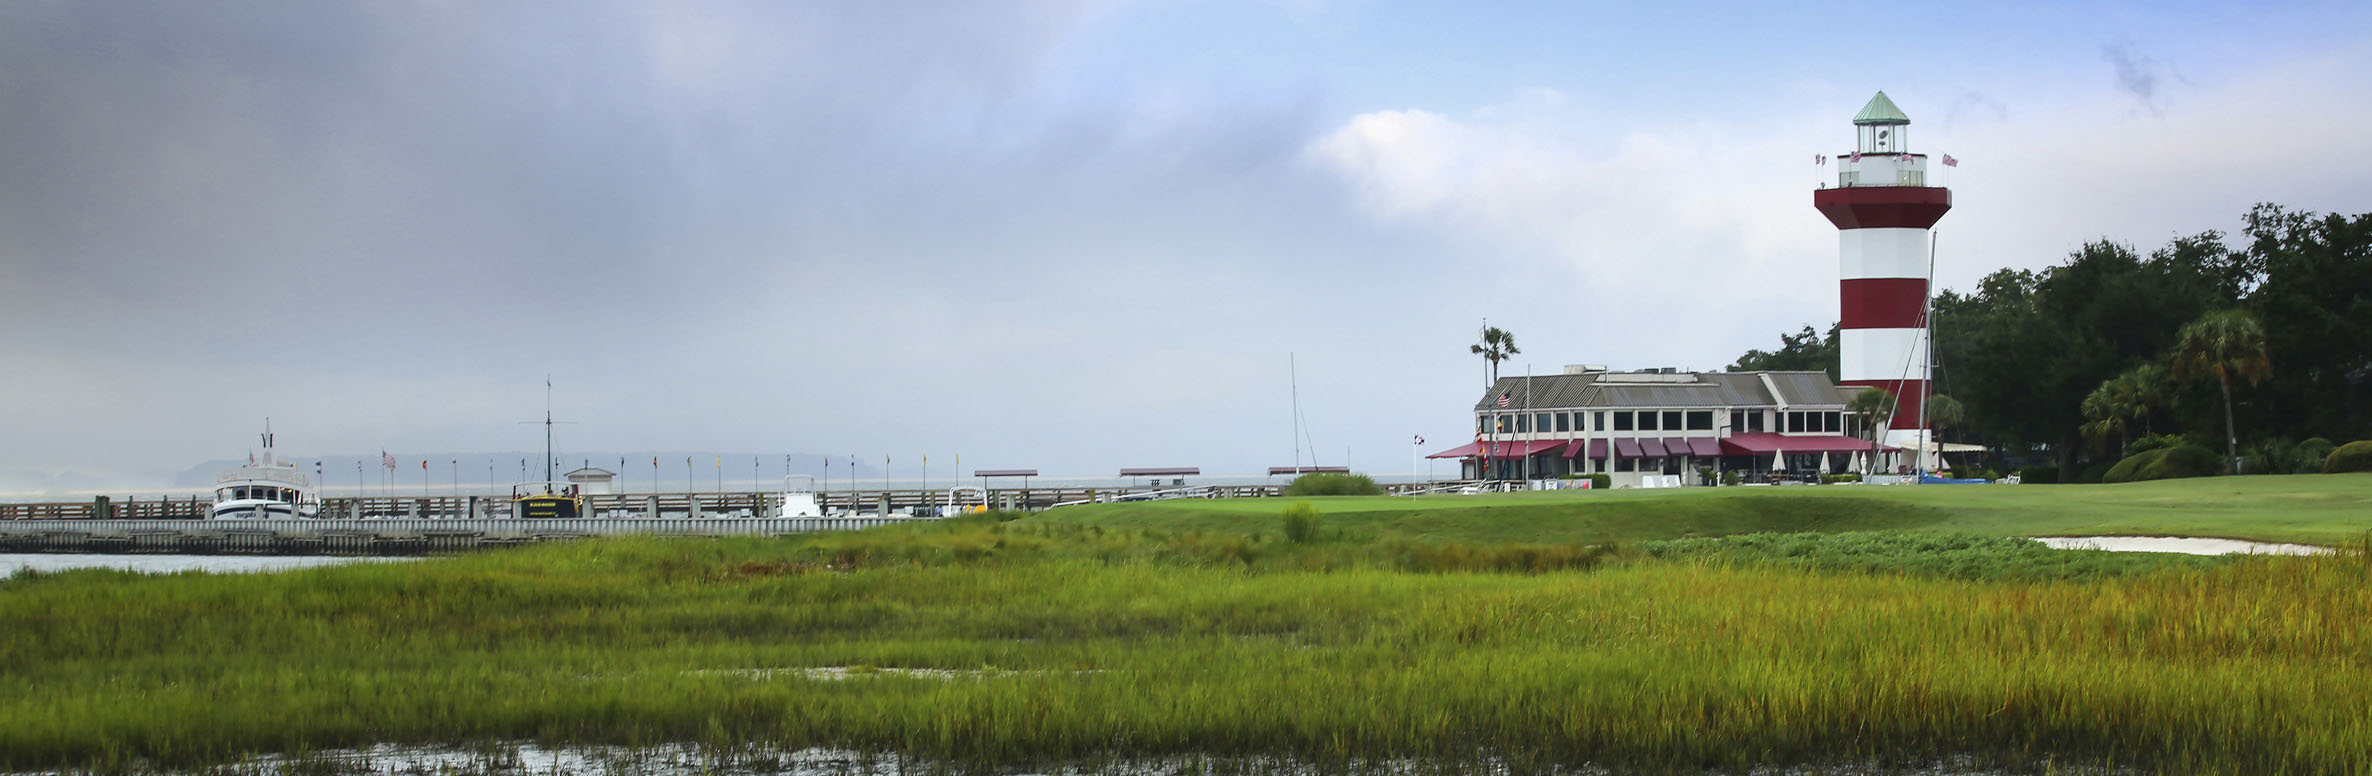 Golf Course Image - Harbour Town Golf Links No. 18